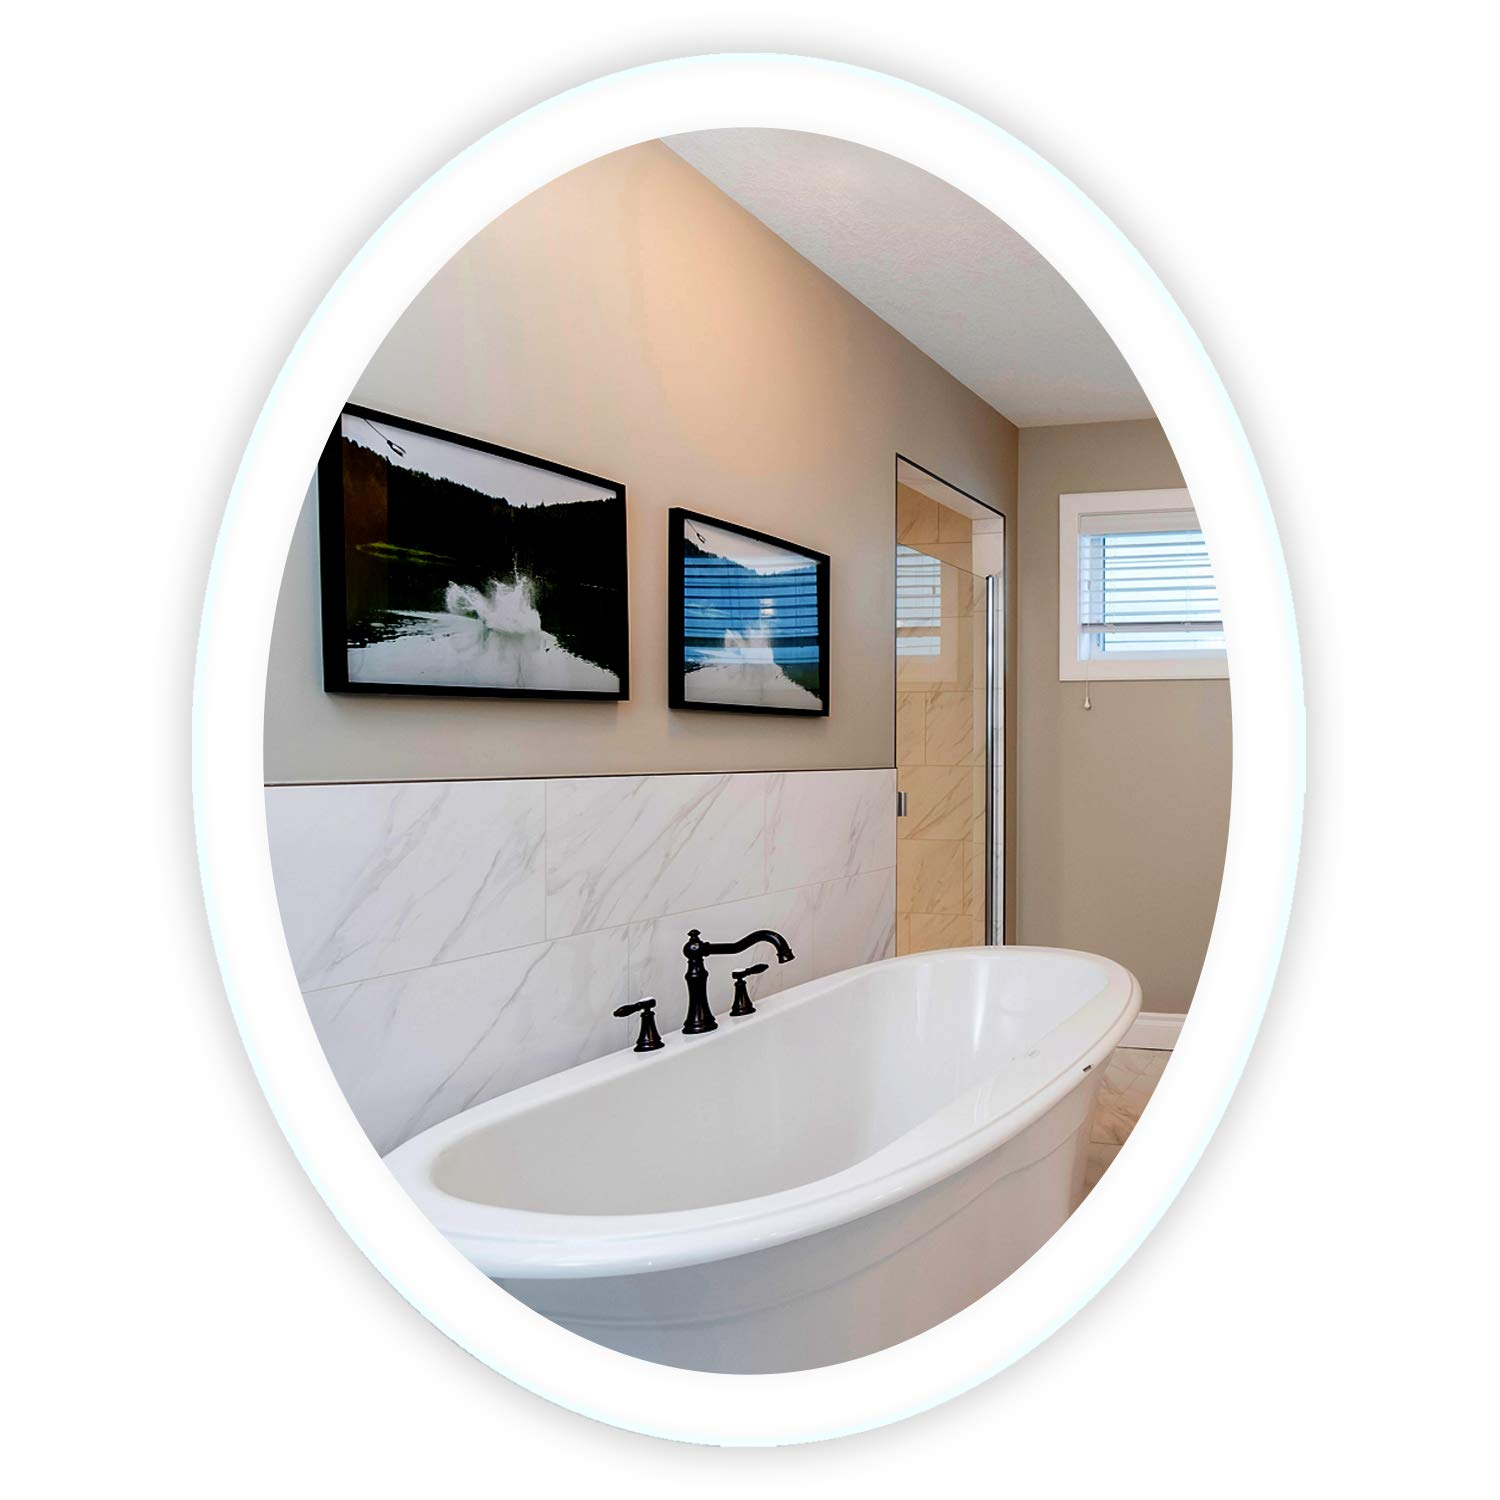 LED Side-Lighted Bathroom Vanity Mirror: 32'' Wide x 40'' Tall - Commercial Grade - Oval - Wall-Mounted by Mirrors and Marble